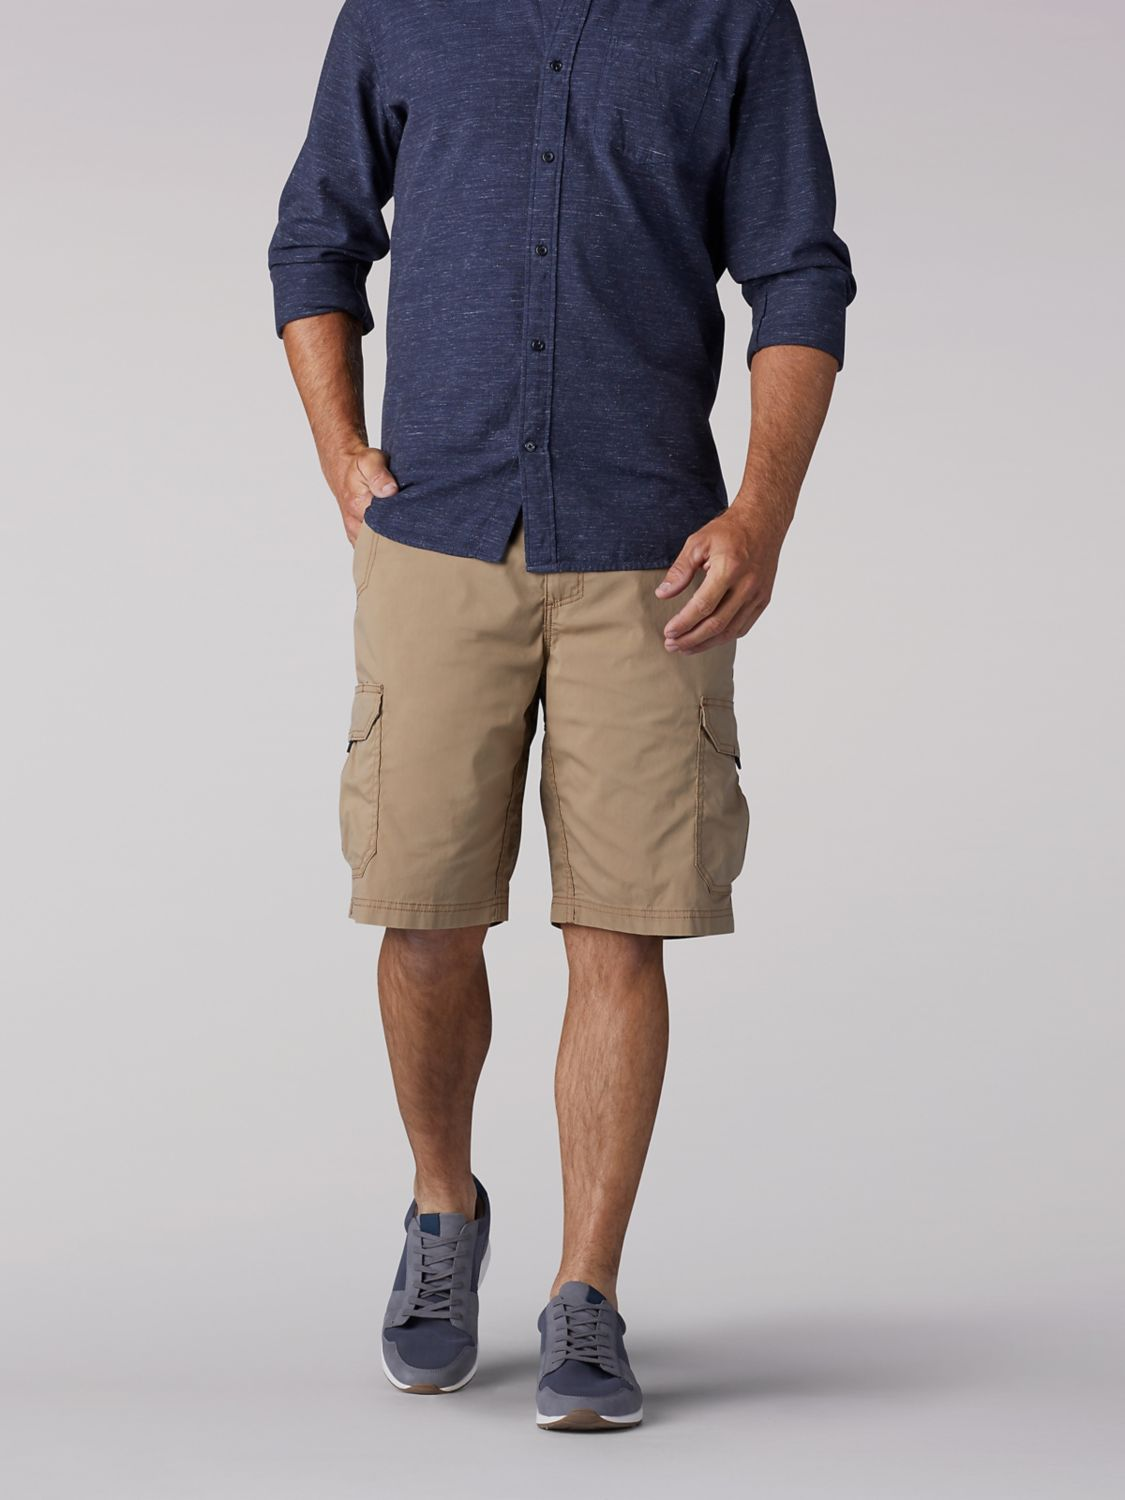 Extreme Motion Crossroad Cargo Short in Nomad from Front View